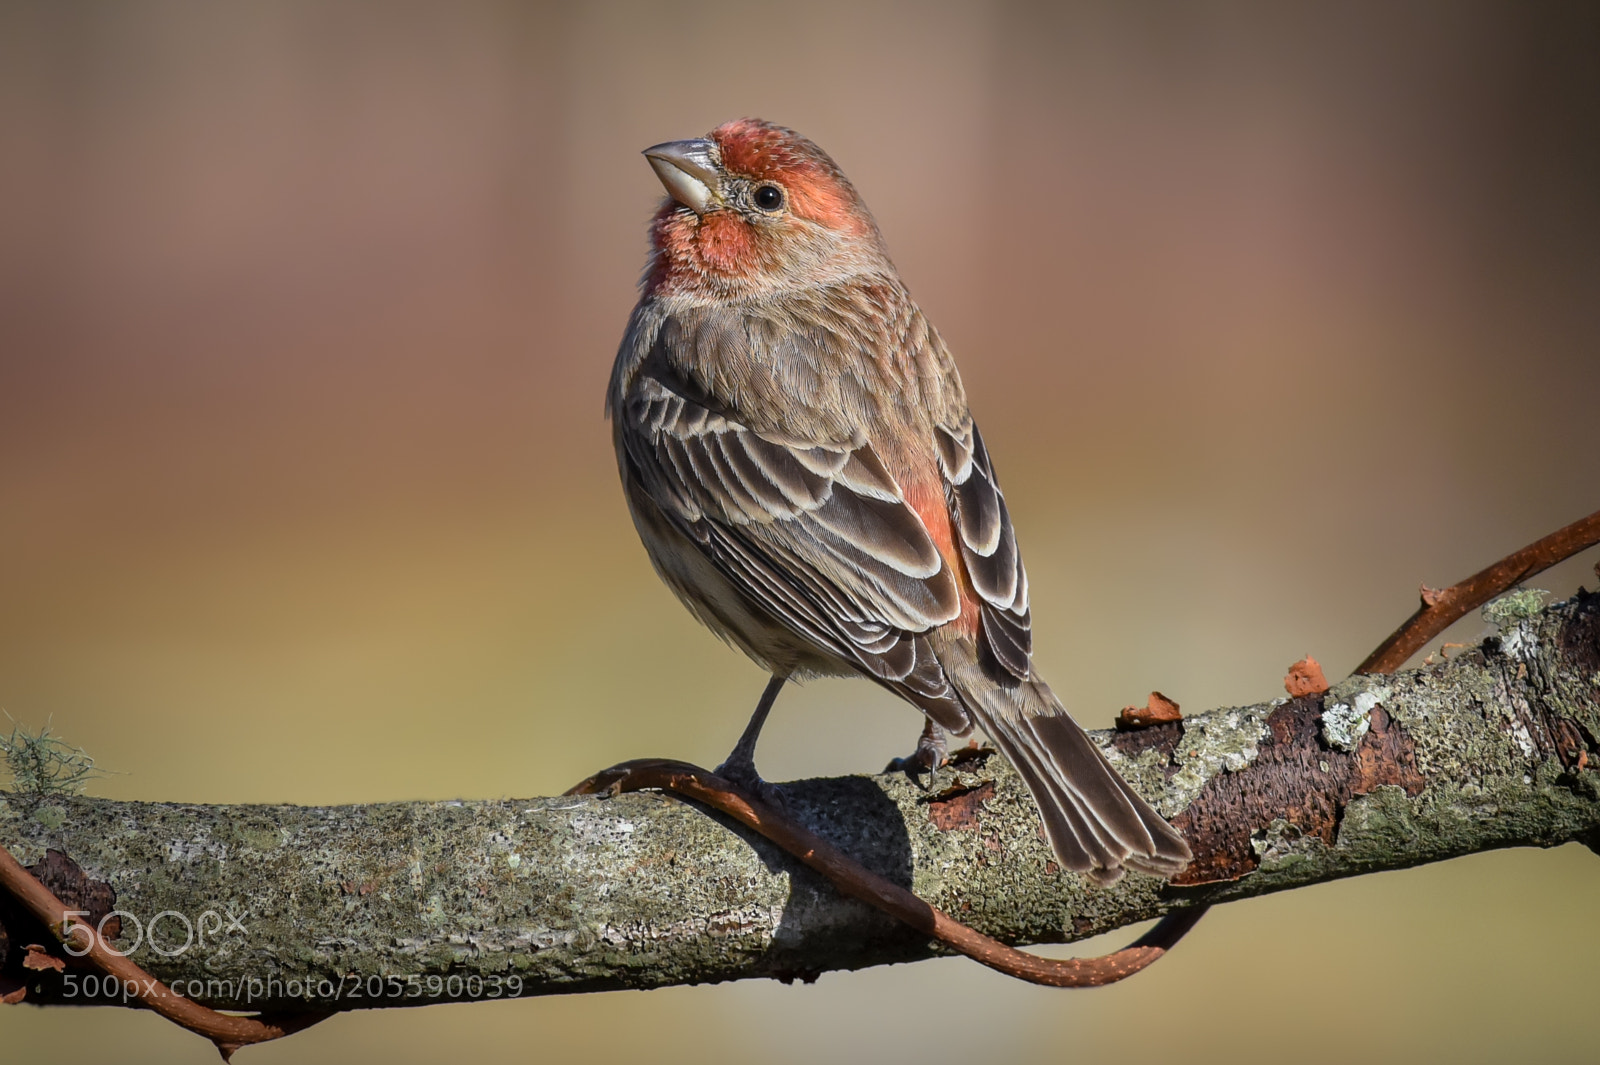 House Finch, Nikon D750, AF-S VR Nikkor 300mm f/2.8G IF-ED